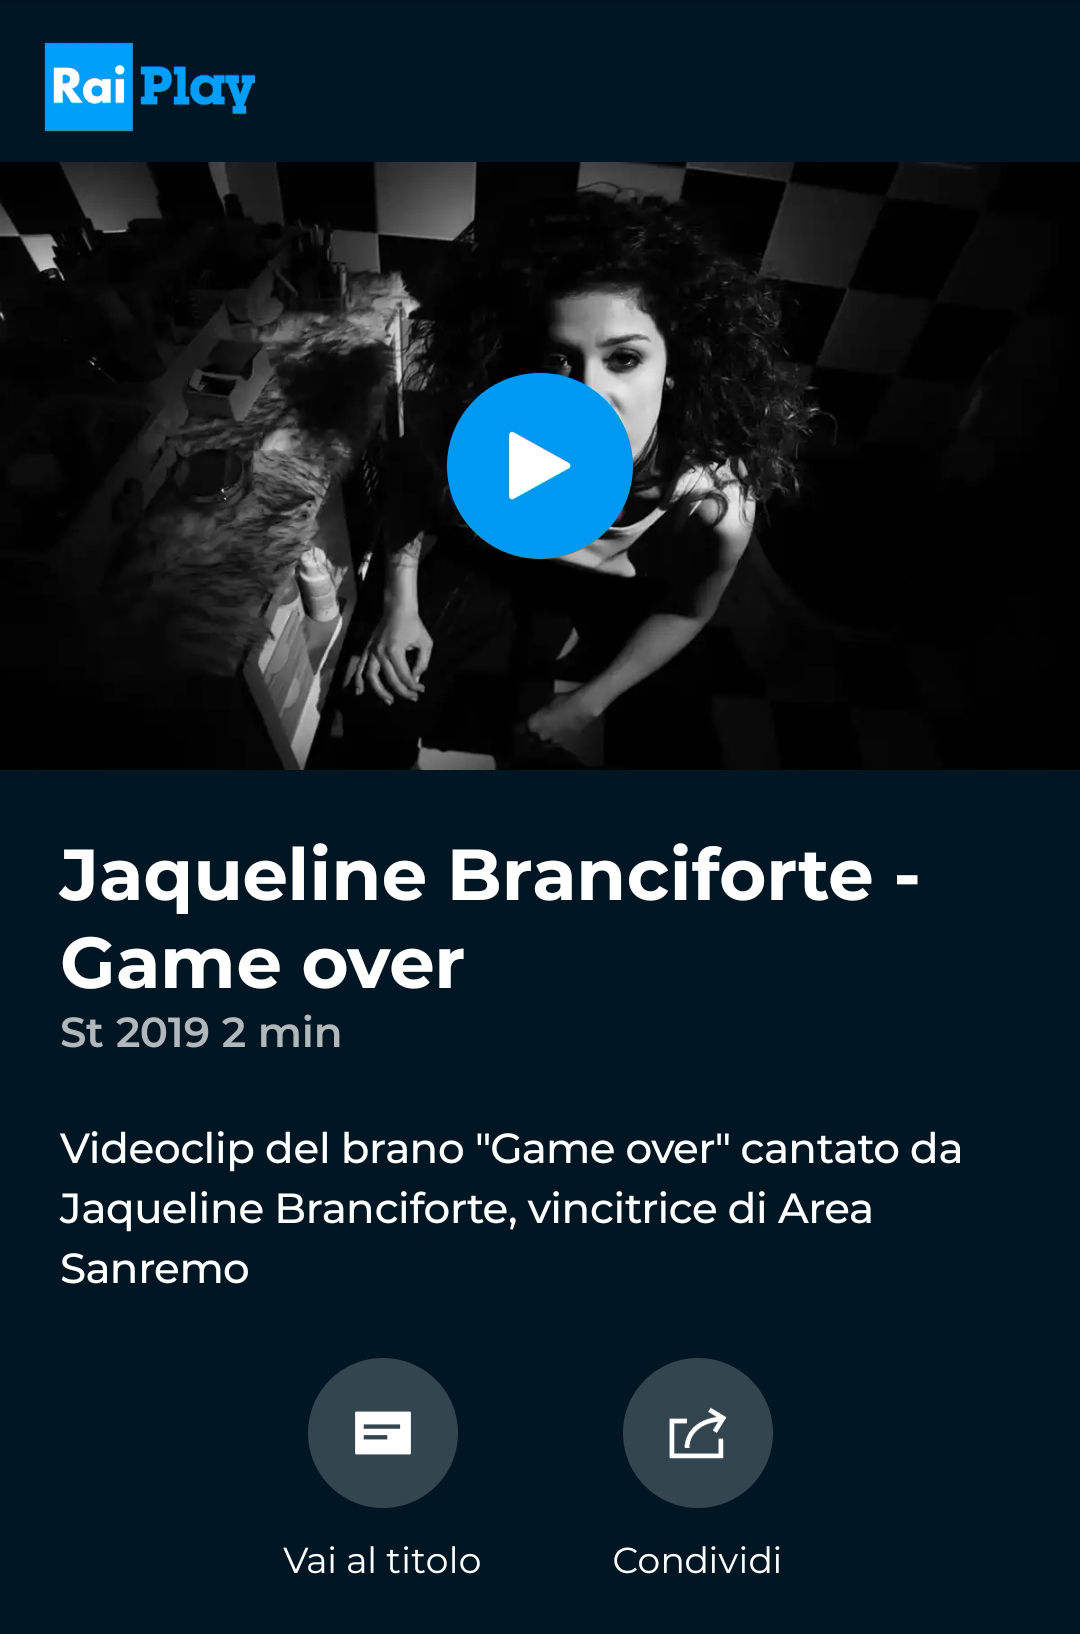 Game Over, Jaqueline ranciforte